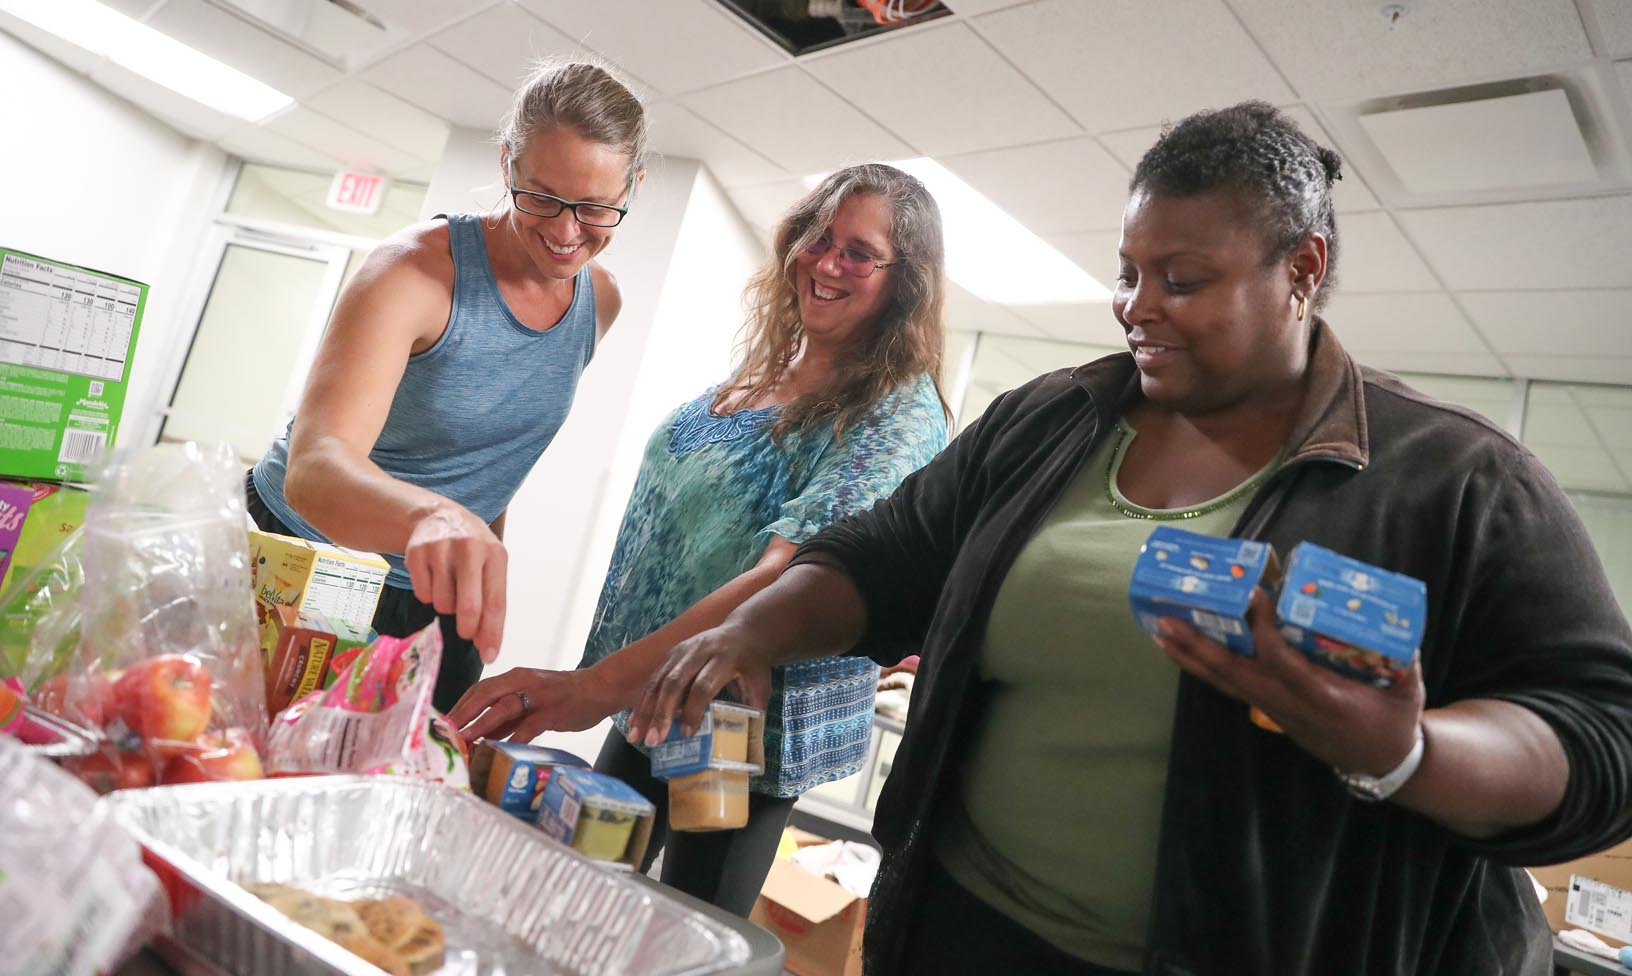 From left, Jennifer Bennetts of Lincoln, Sue Lasek of Milford and Geri Anderson of Omaha drop off food and supplies for flood evacuees Tuesday at UNK's Centennial Tower West residence hall. UNK opened two residence halls to provide housing for people impacted by flooding. (Photo by Corbey R. Dorsey, UNK Communications)